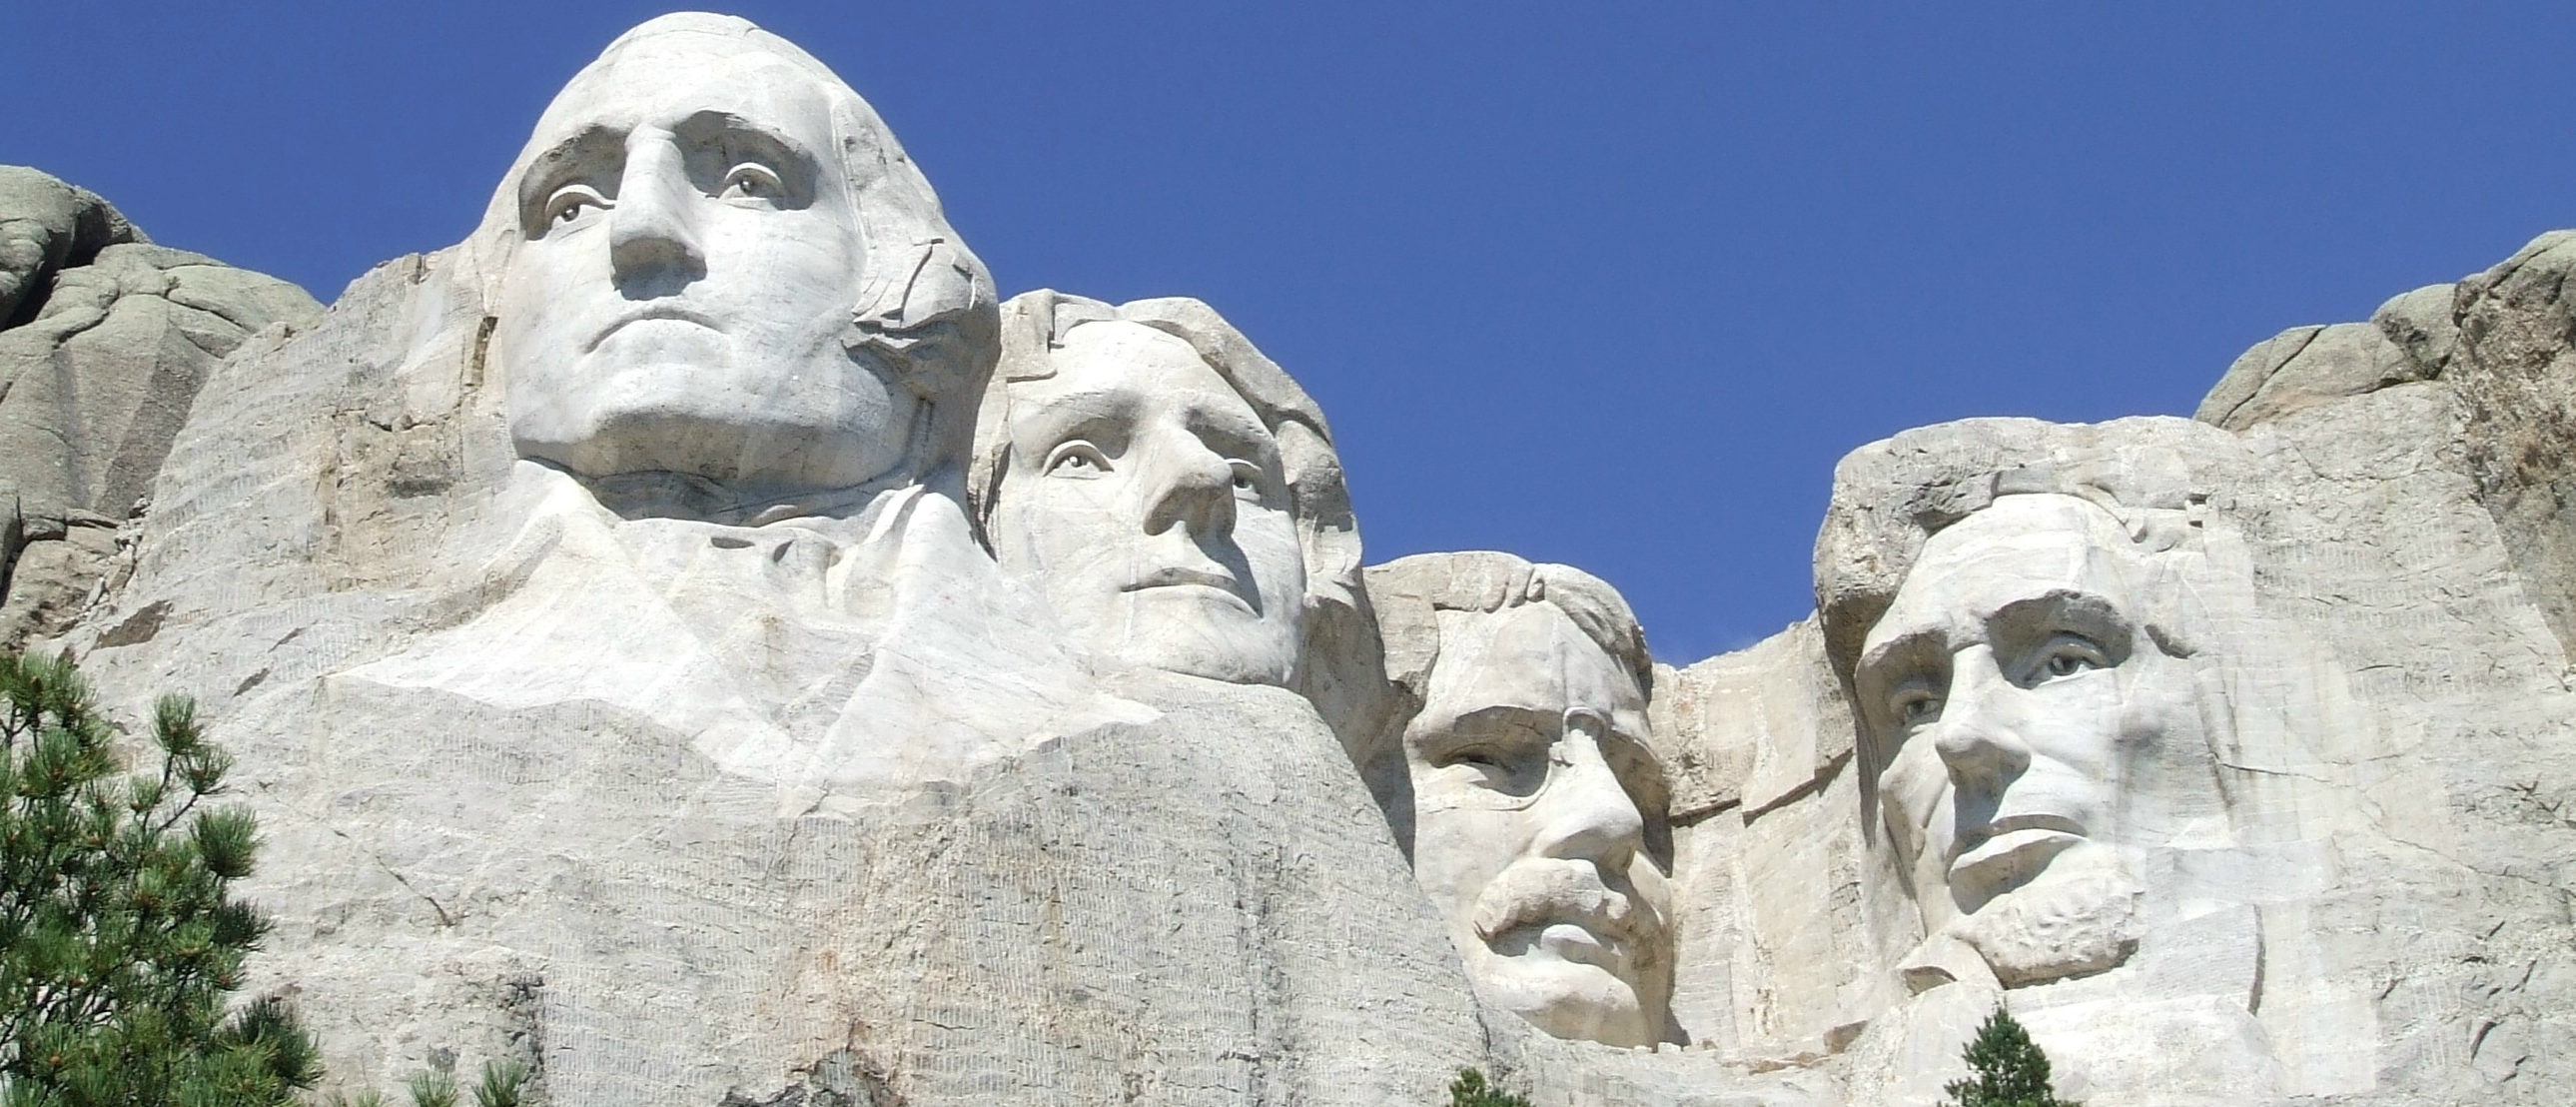 U.S. presidents George Washington, Thomas Jefferson, Theodore Roosevelt and Abraham Lincoln are sculpted on Mount Rushmore National Memorial in the Black Hills region of South Dakota, U.S. in this U.S. National Park Service photo taken on April 12, 2013. Courtesy NPS/Handout via REUTERS.